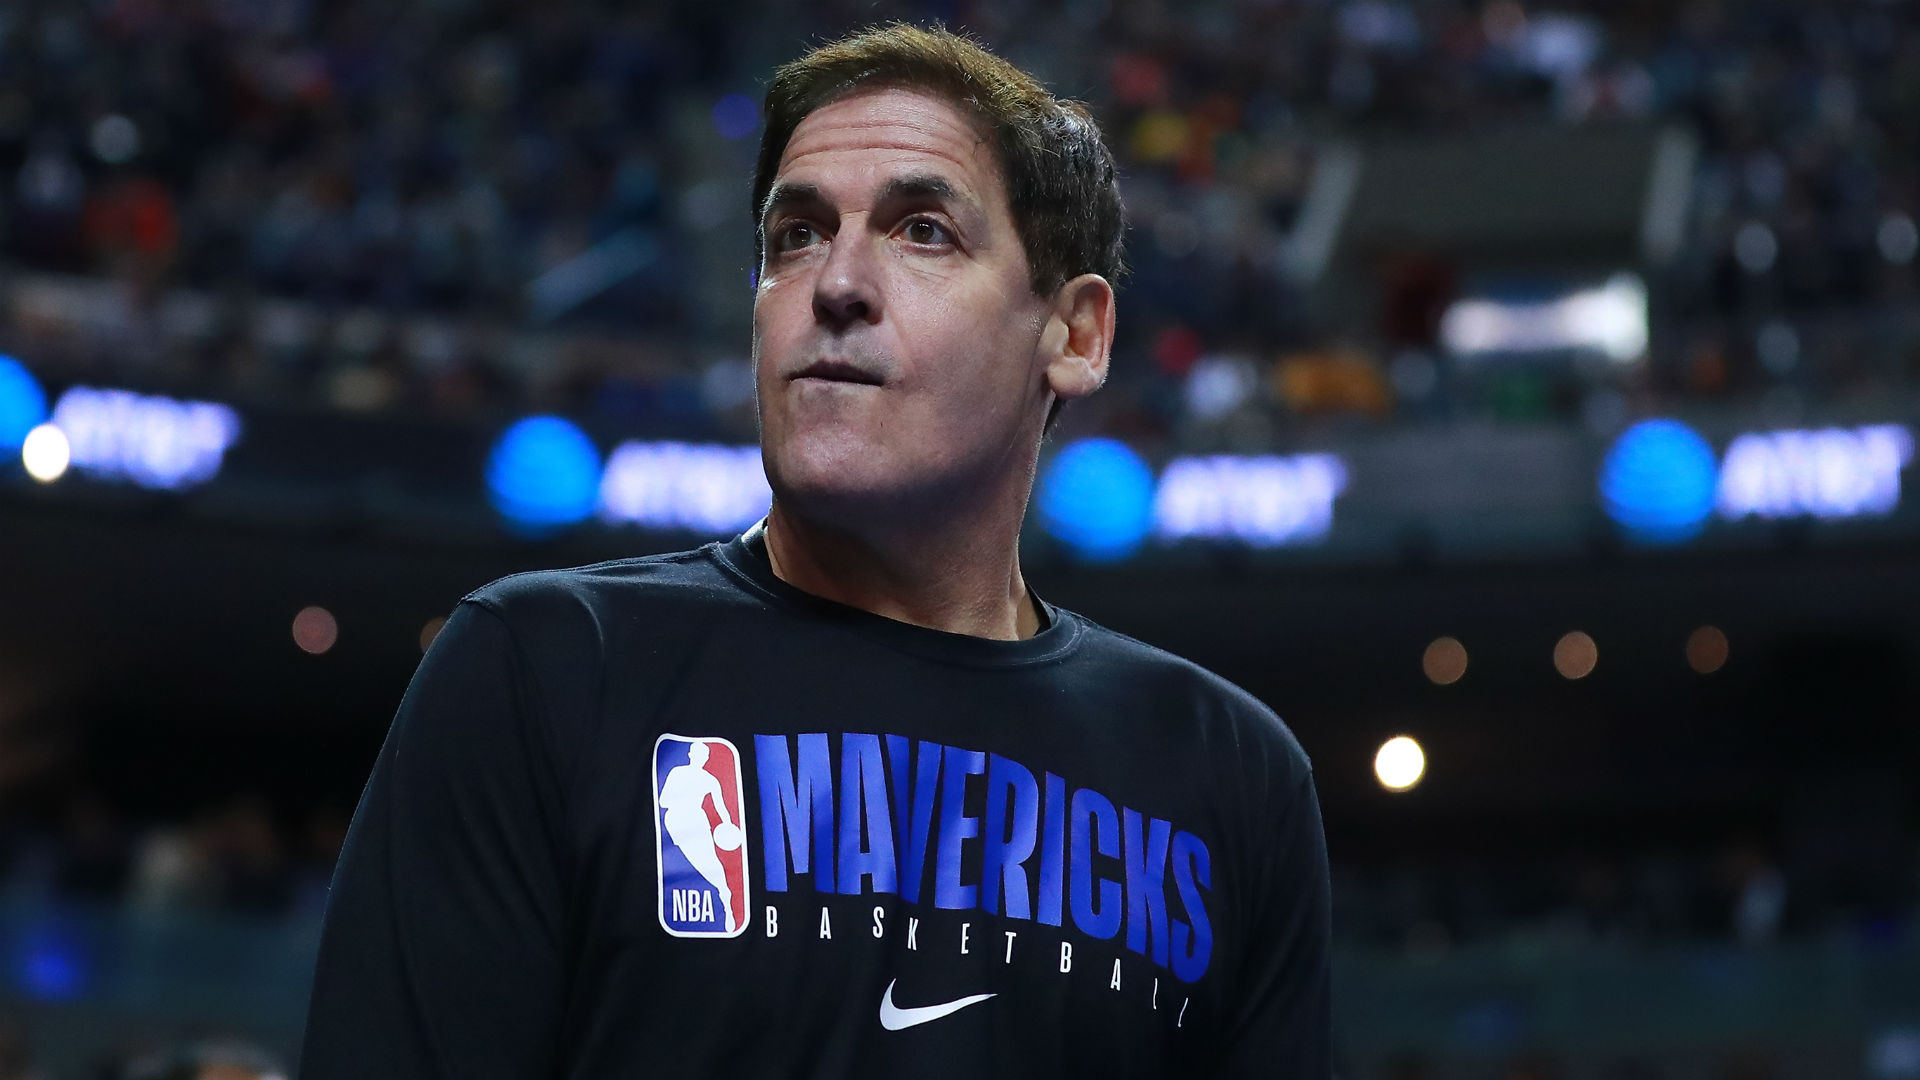 Mark Cuban wants 'White House protocol' for testing before reopening Mavs' facility